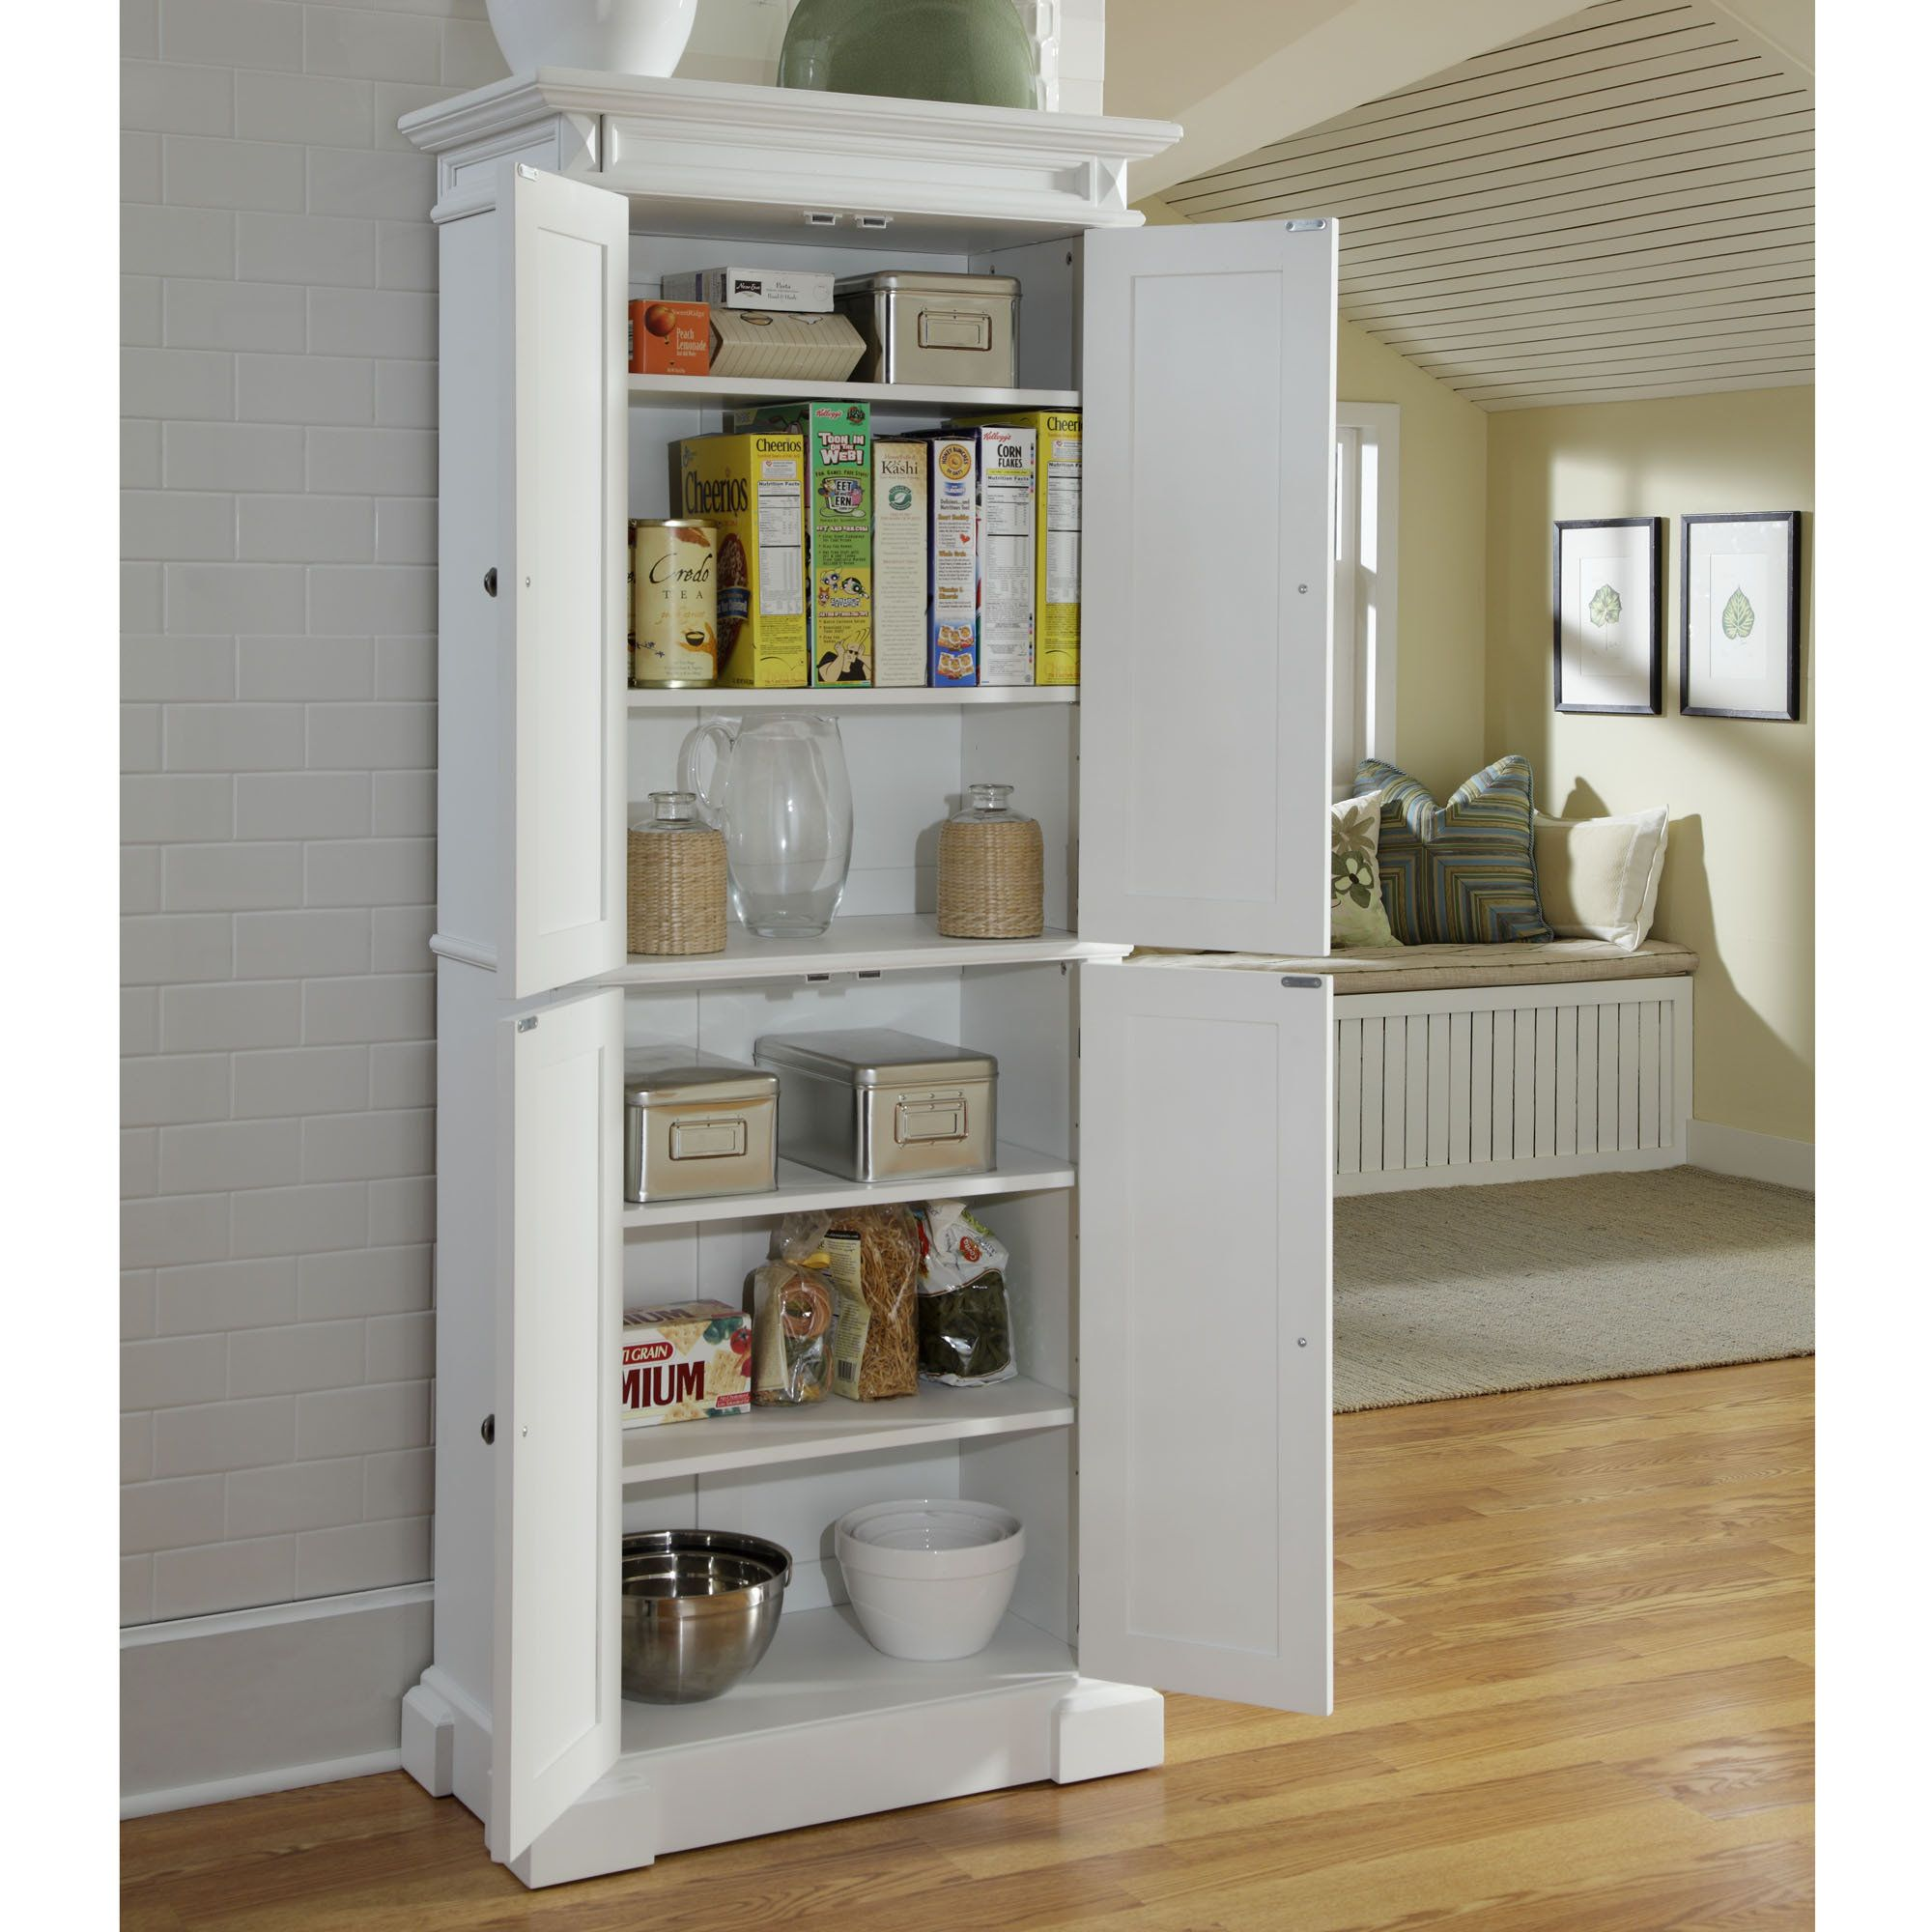 Best No Pantry No Problem Interior Design Home Decor 400 x 300